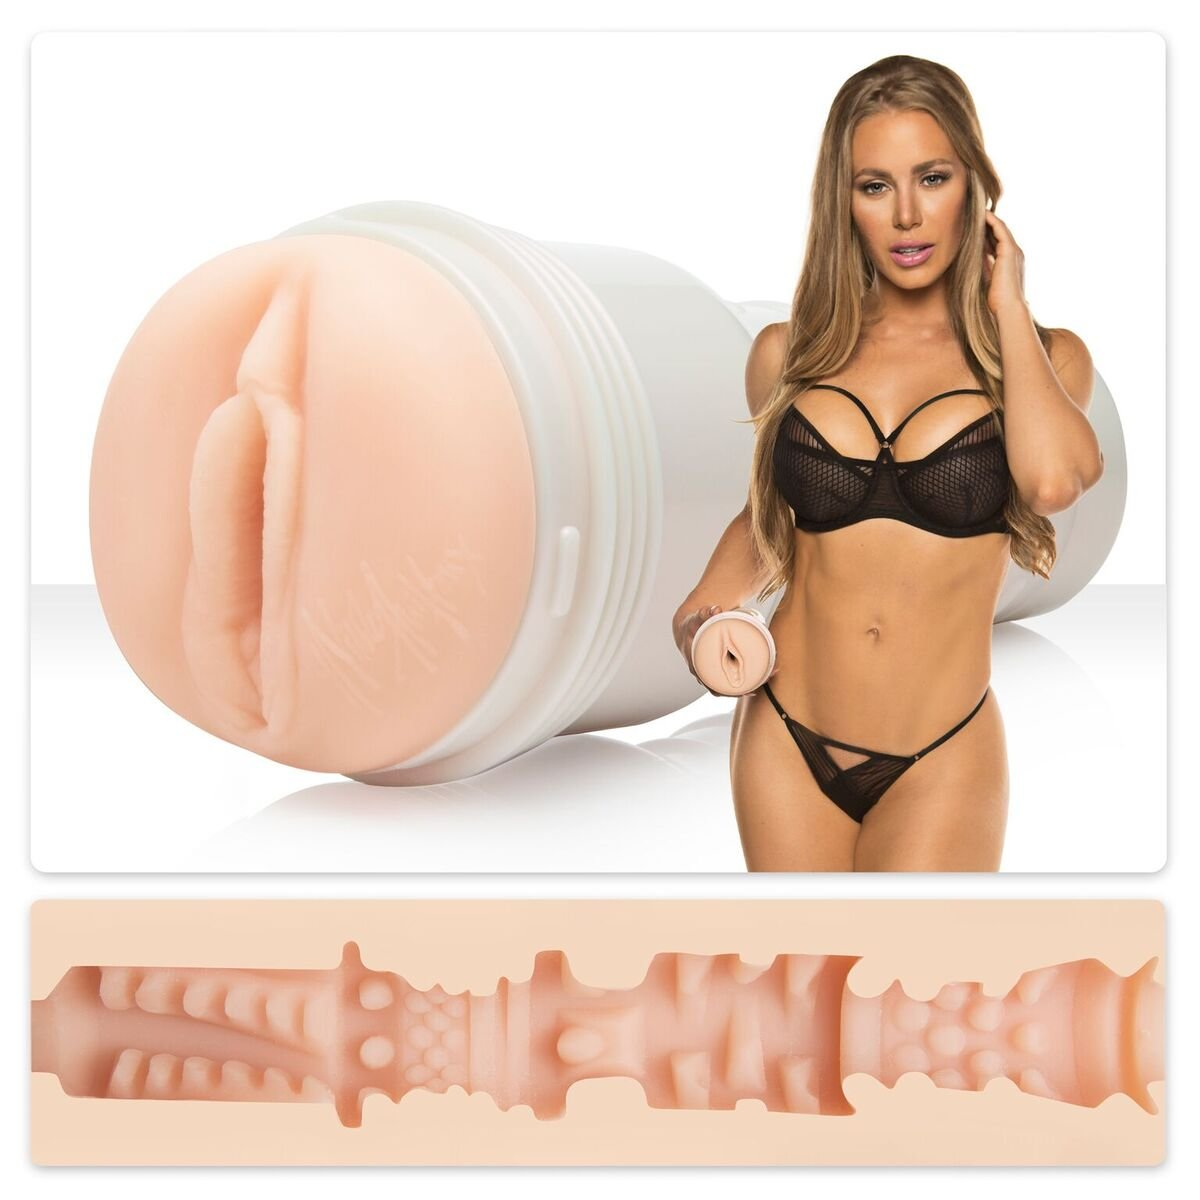 Fleshlight Girls | Nicole Aniston Fit | Very Realistic Male Sex Toy